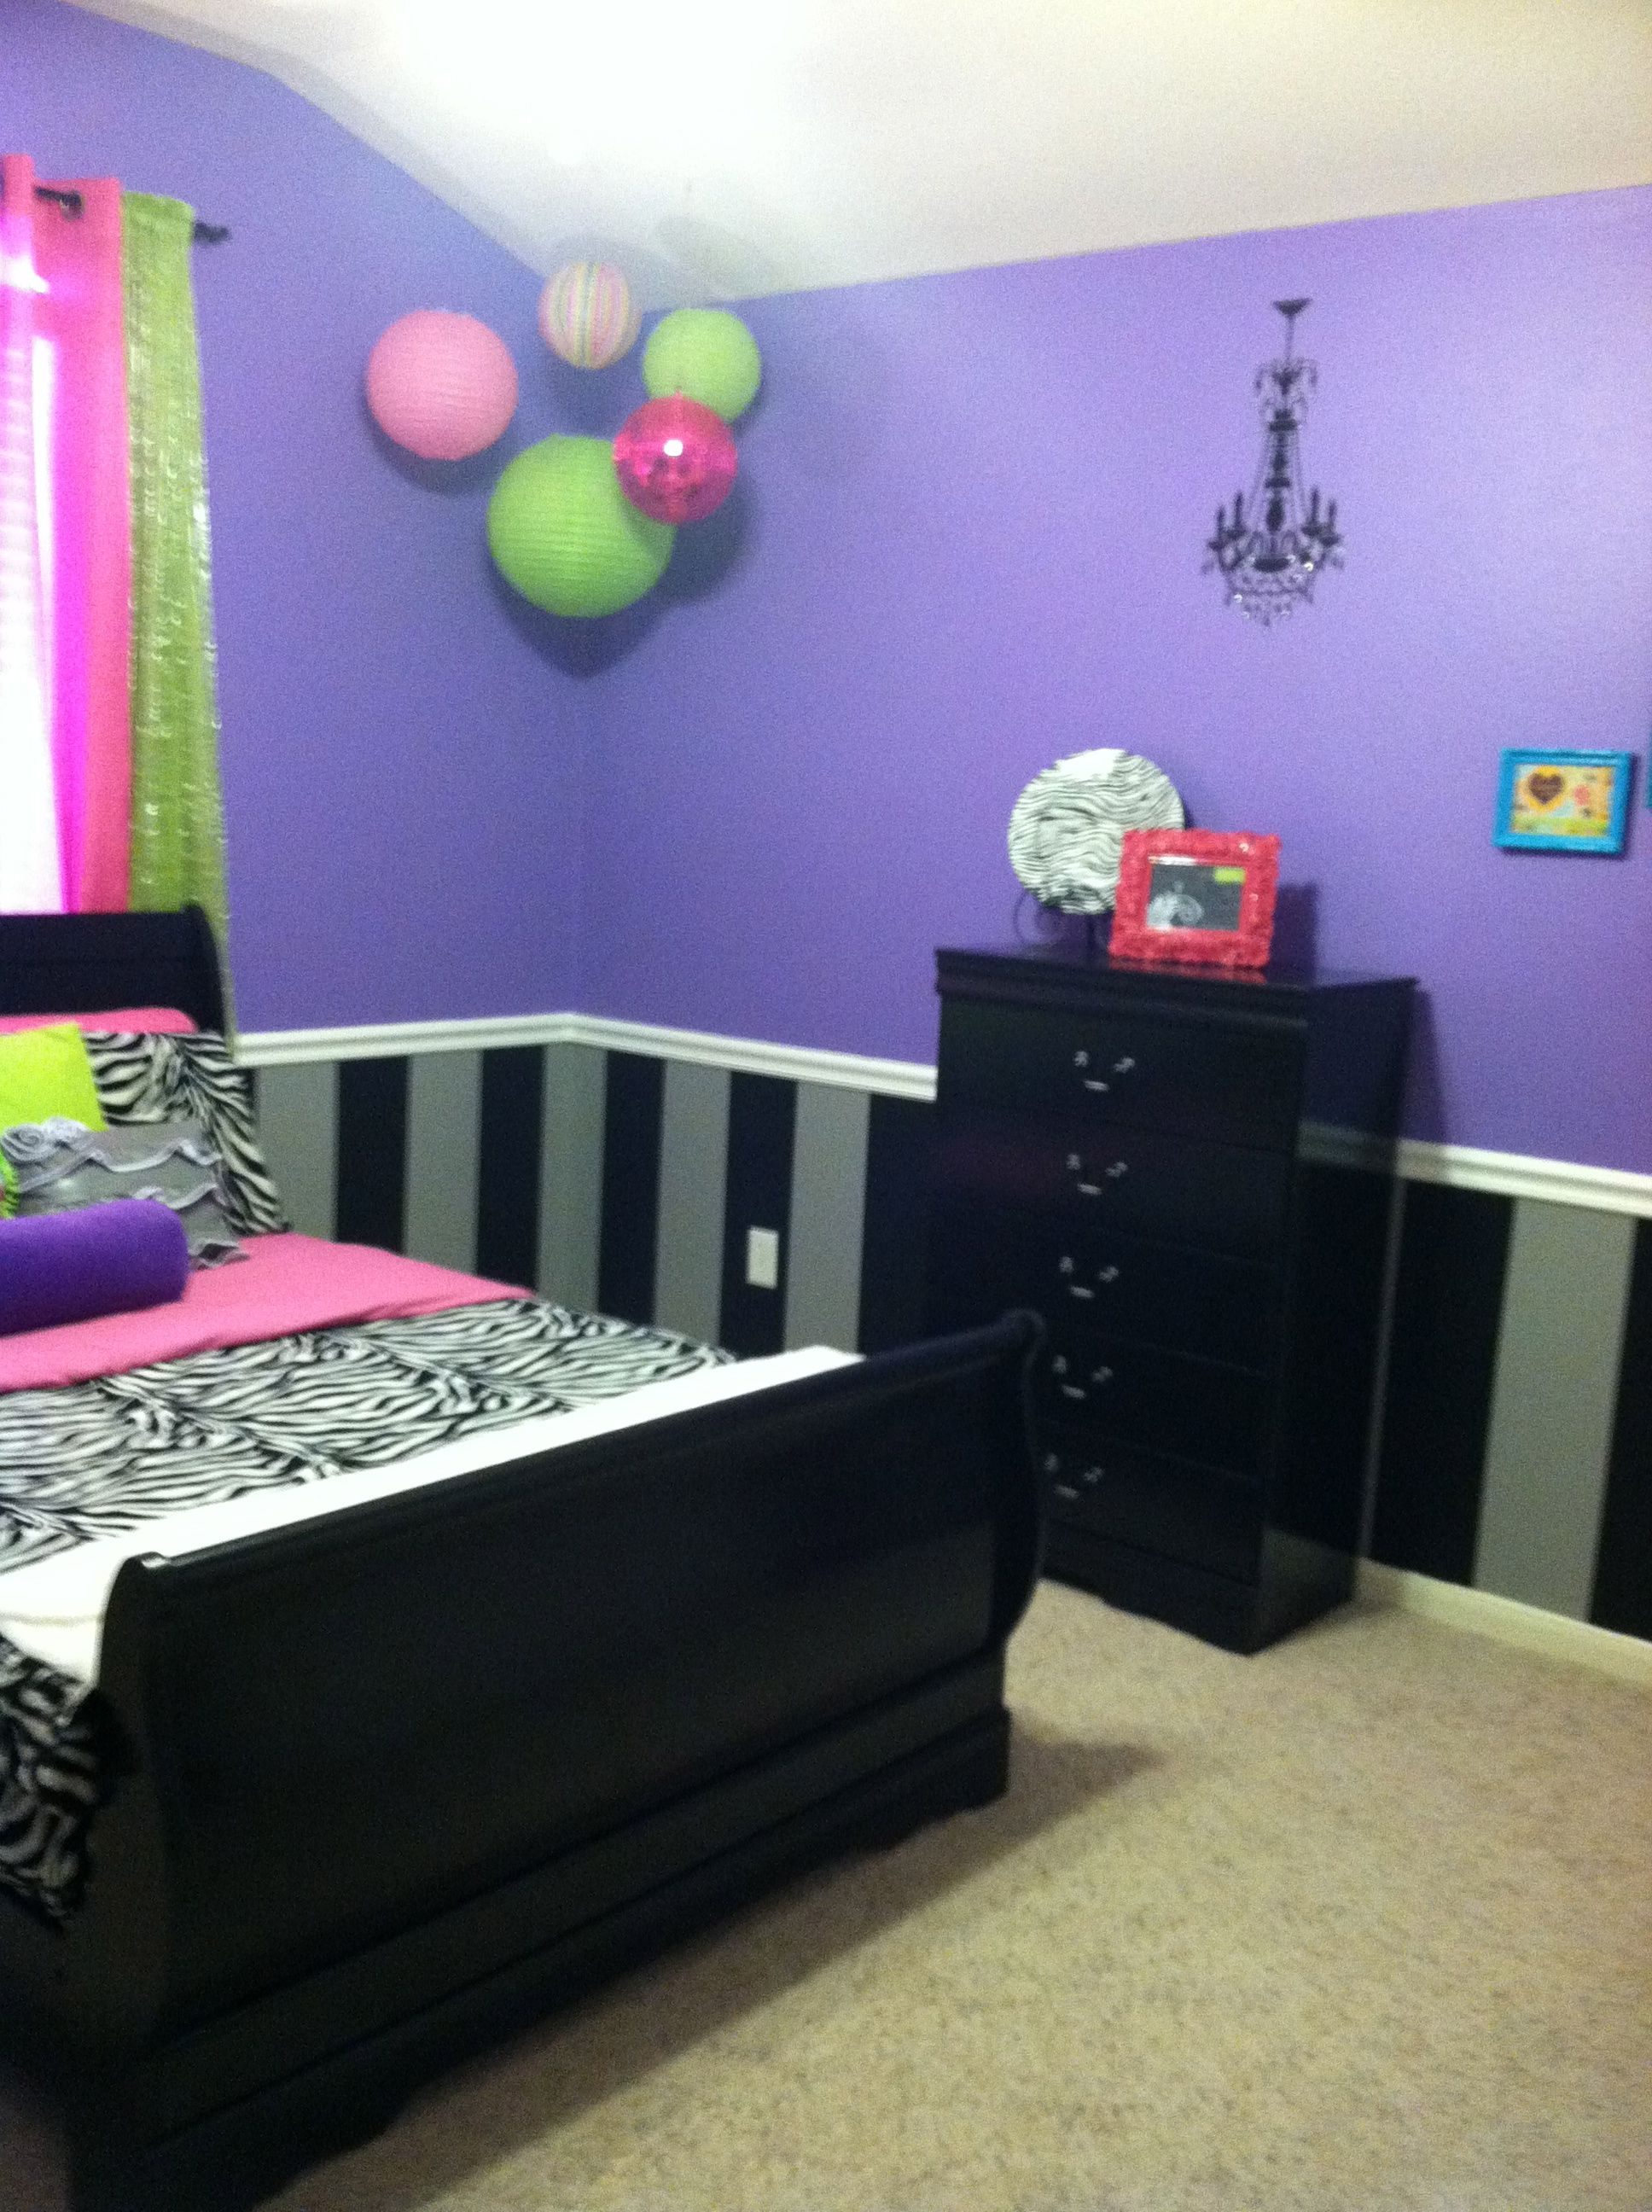 Room Make Over For A Friend 39 S Preteen Daughter She Love